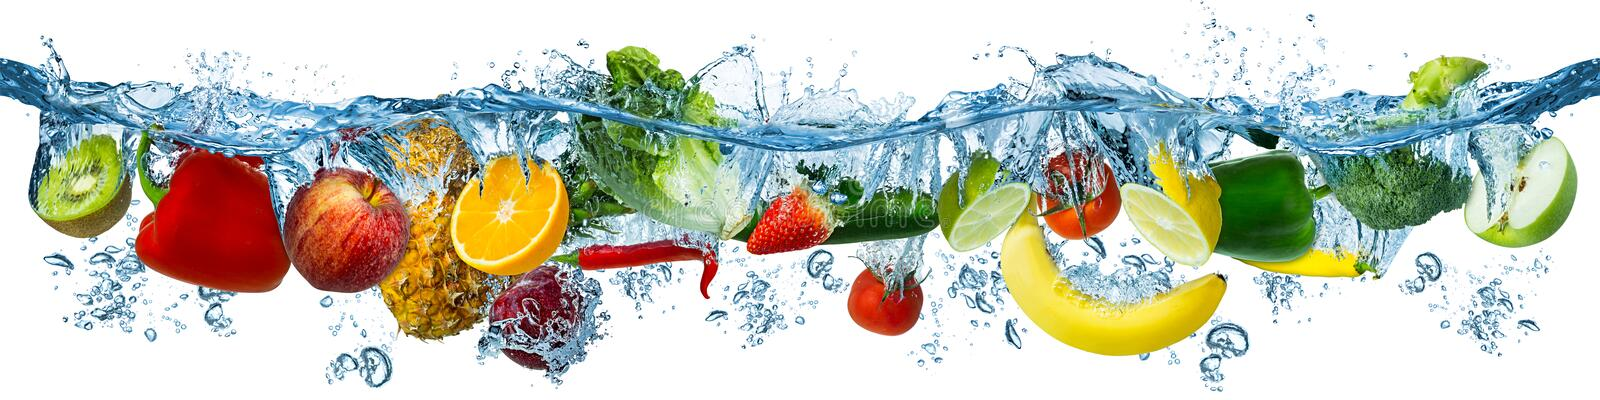 Fresh multi fruits and vegetables splashing into blue clear water splash healthy food diet freshness concept isolated white stock photo